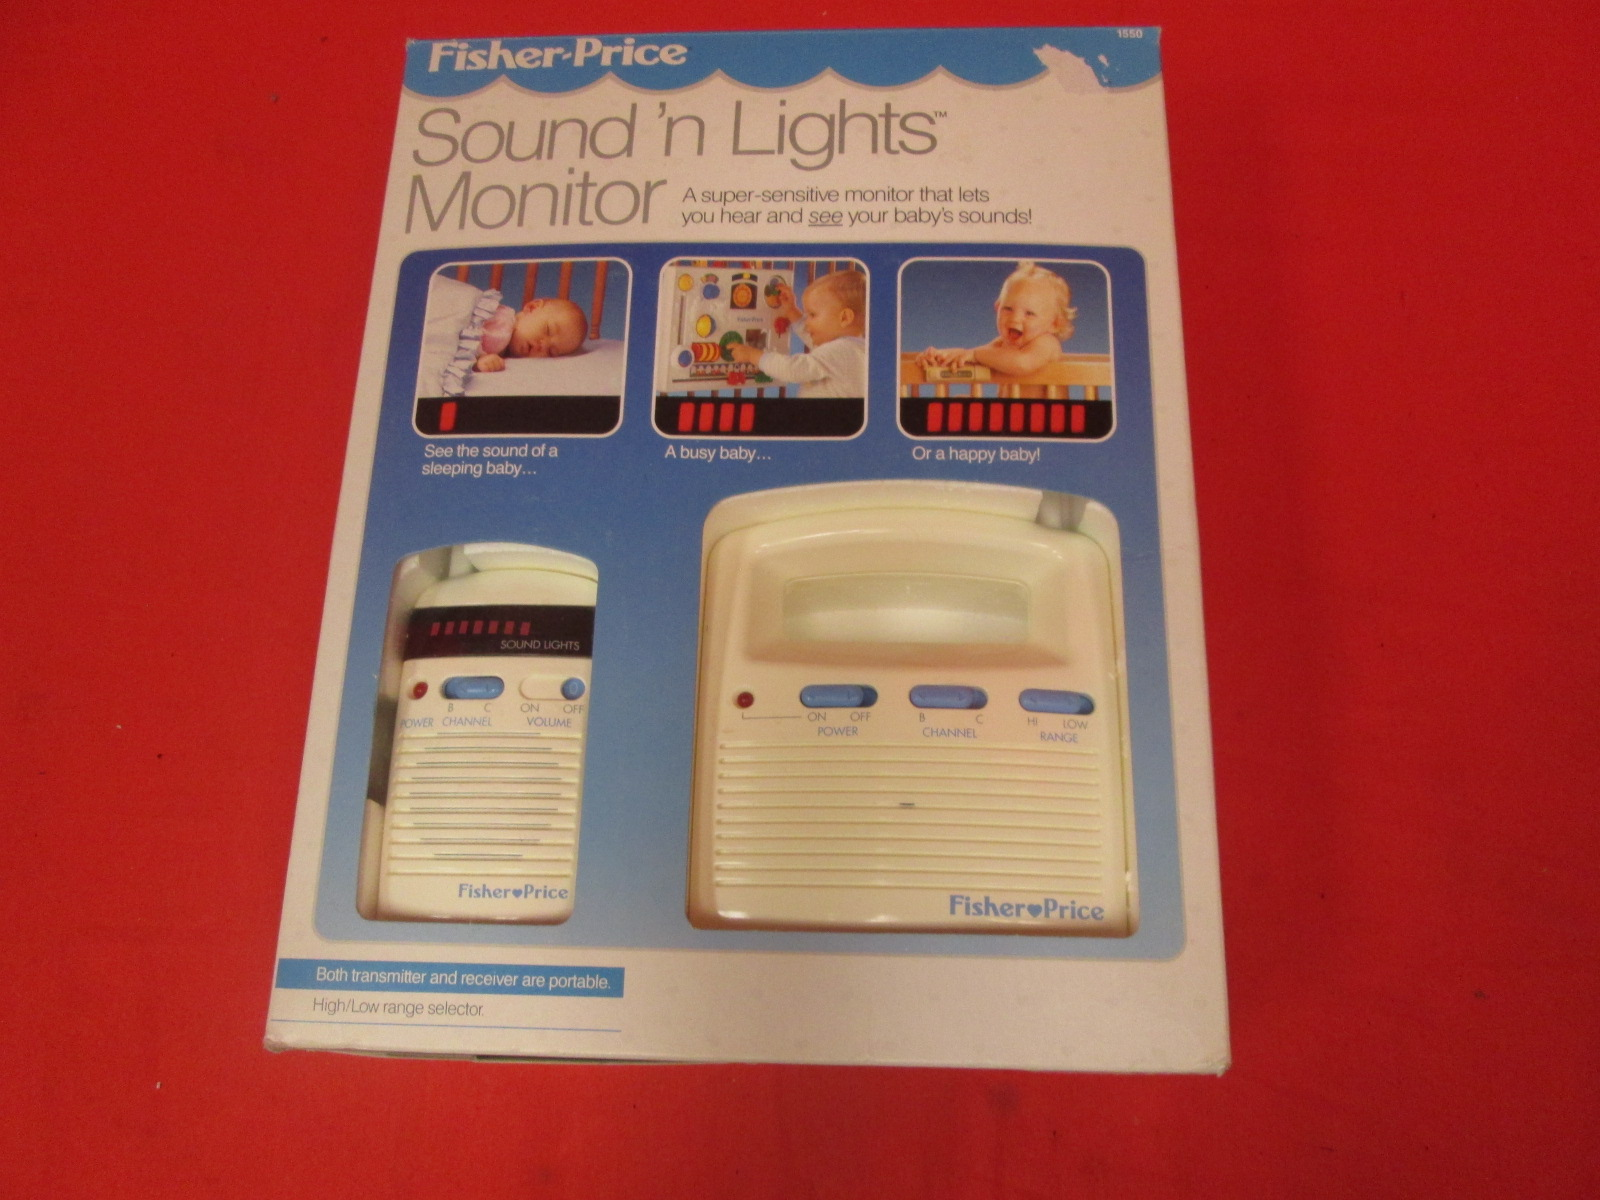 Fisher-Price Sounds N Lights Baby Monitor